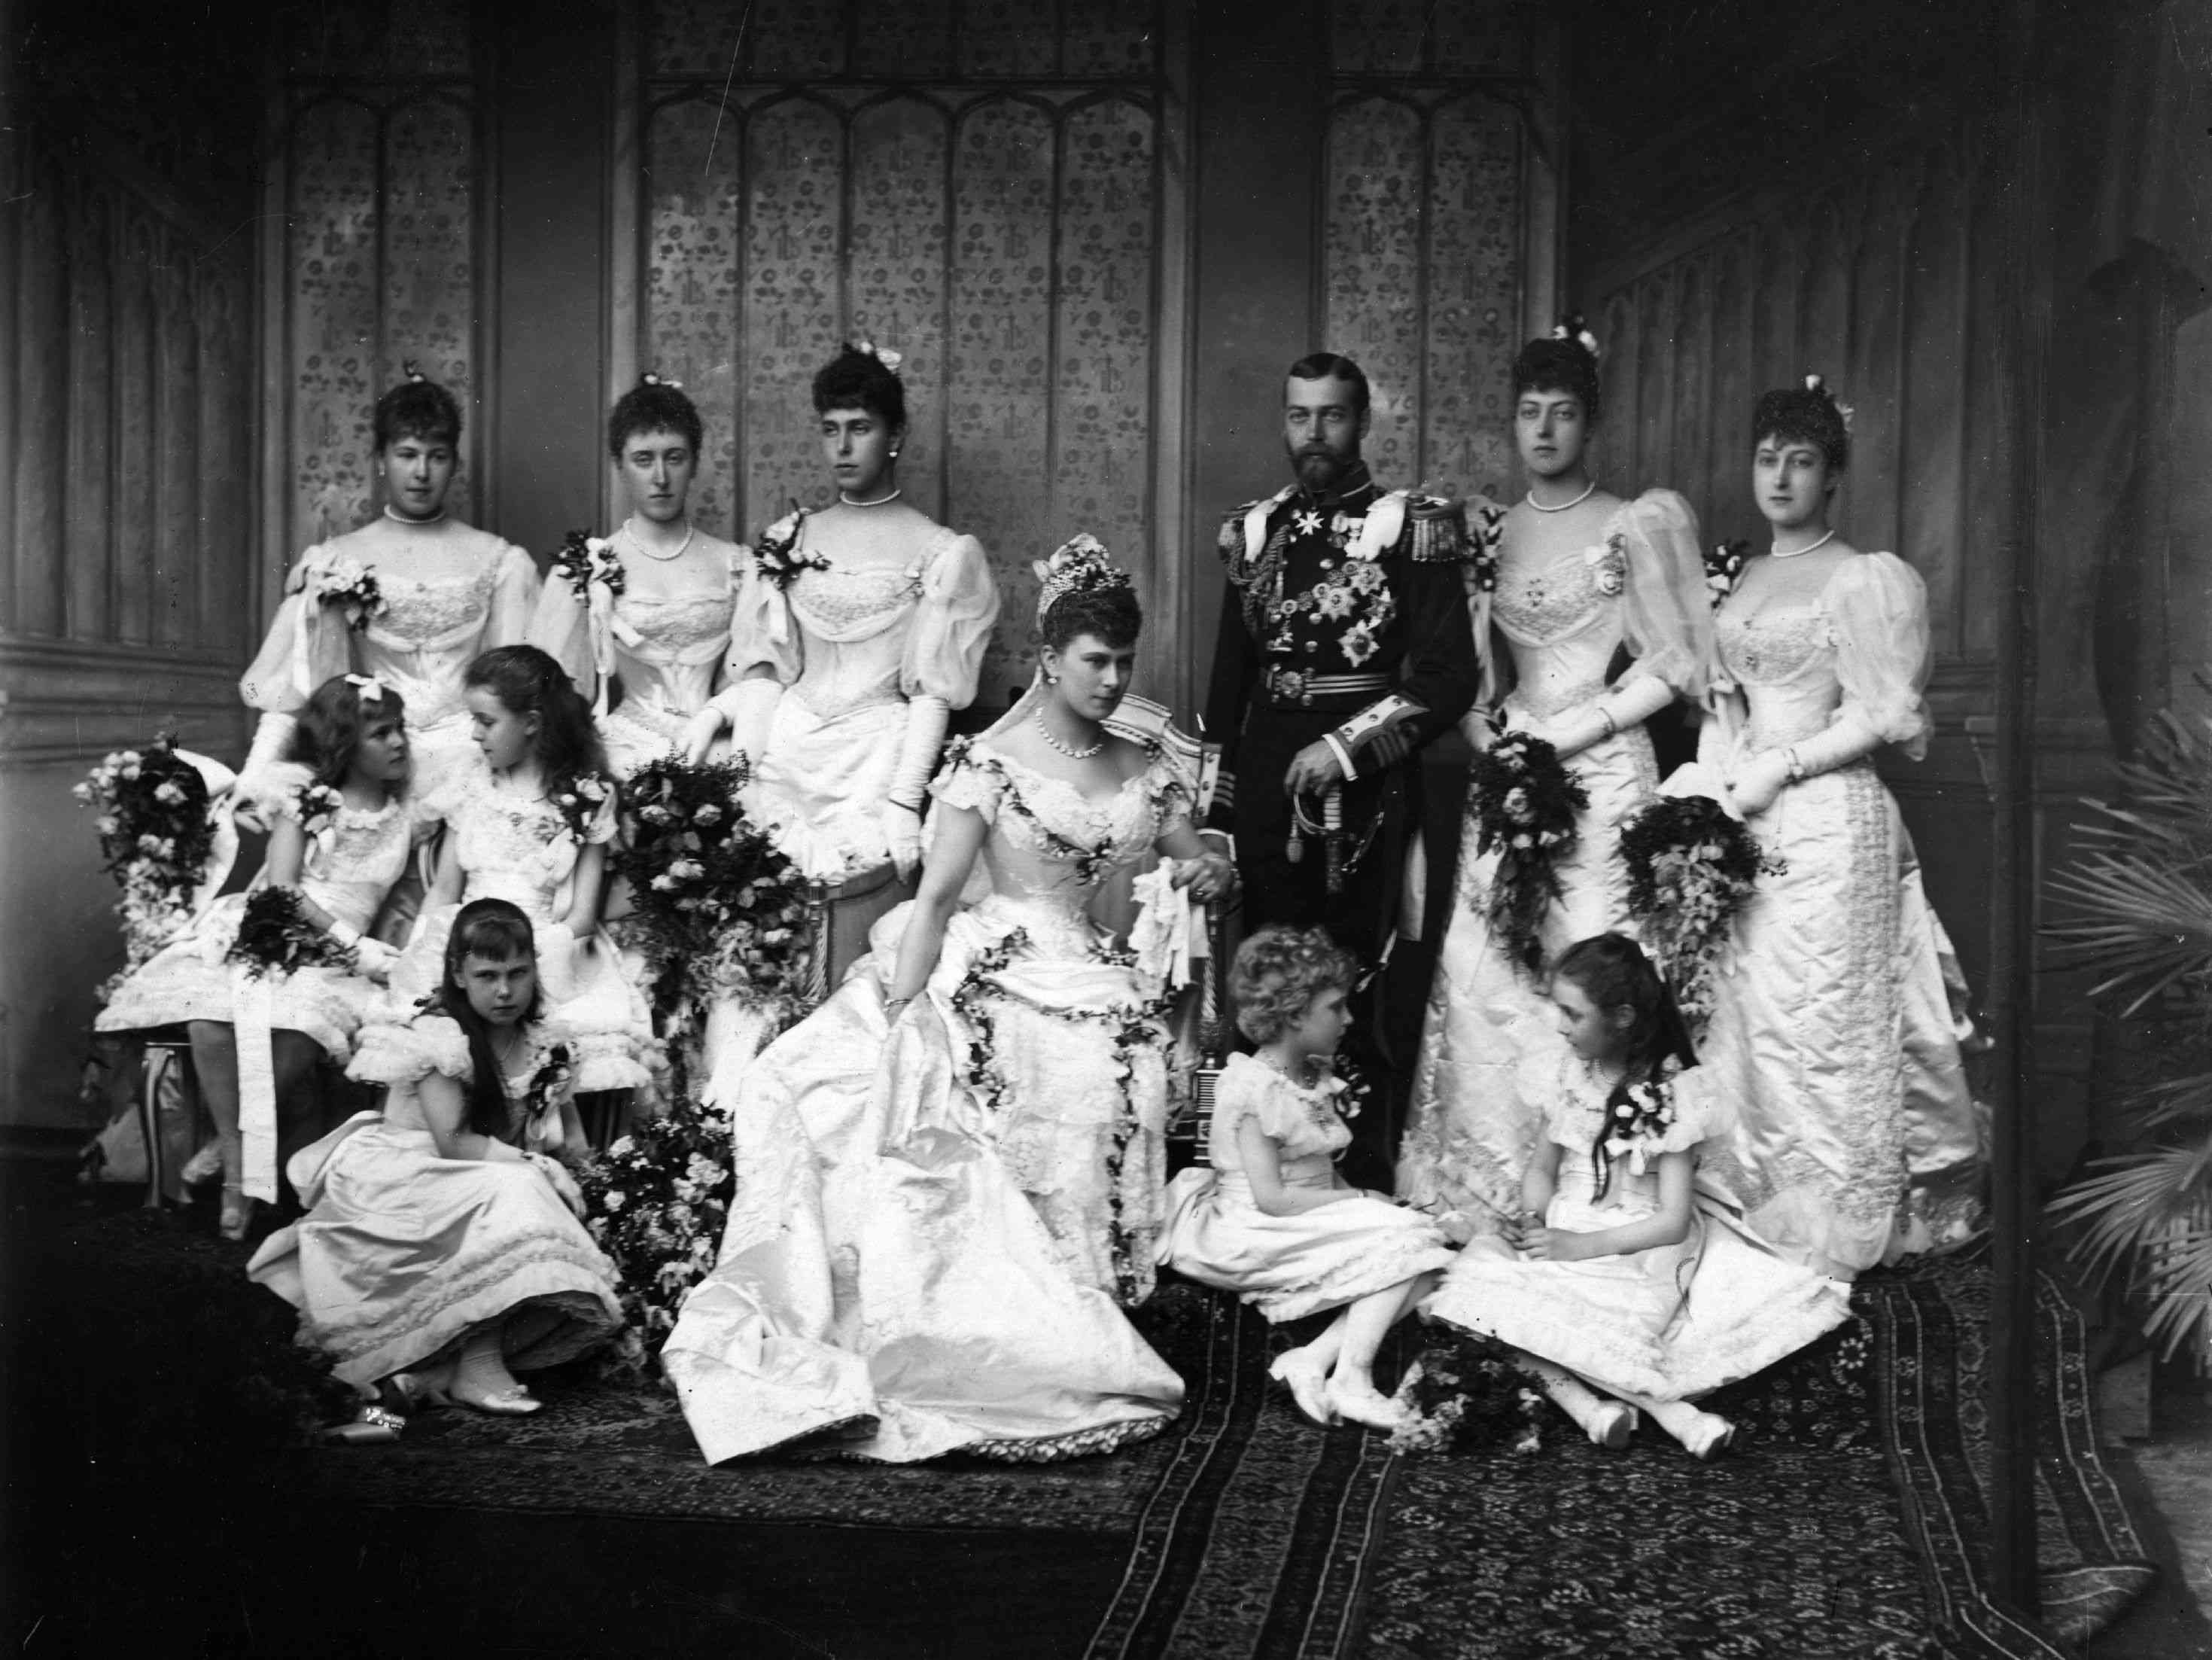 The wedding party of the future King George V and Mary of Teck in 1893